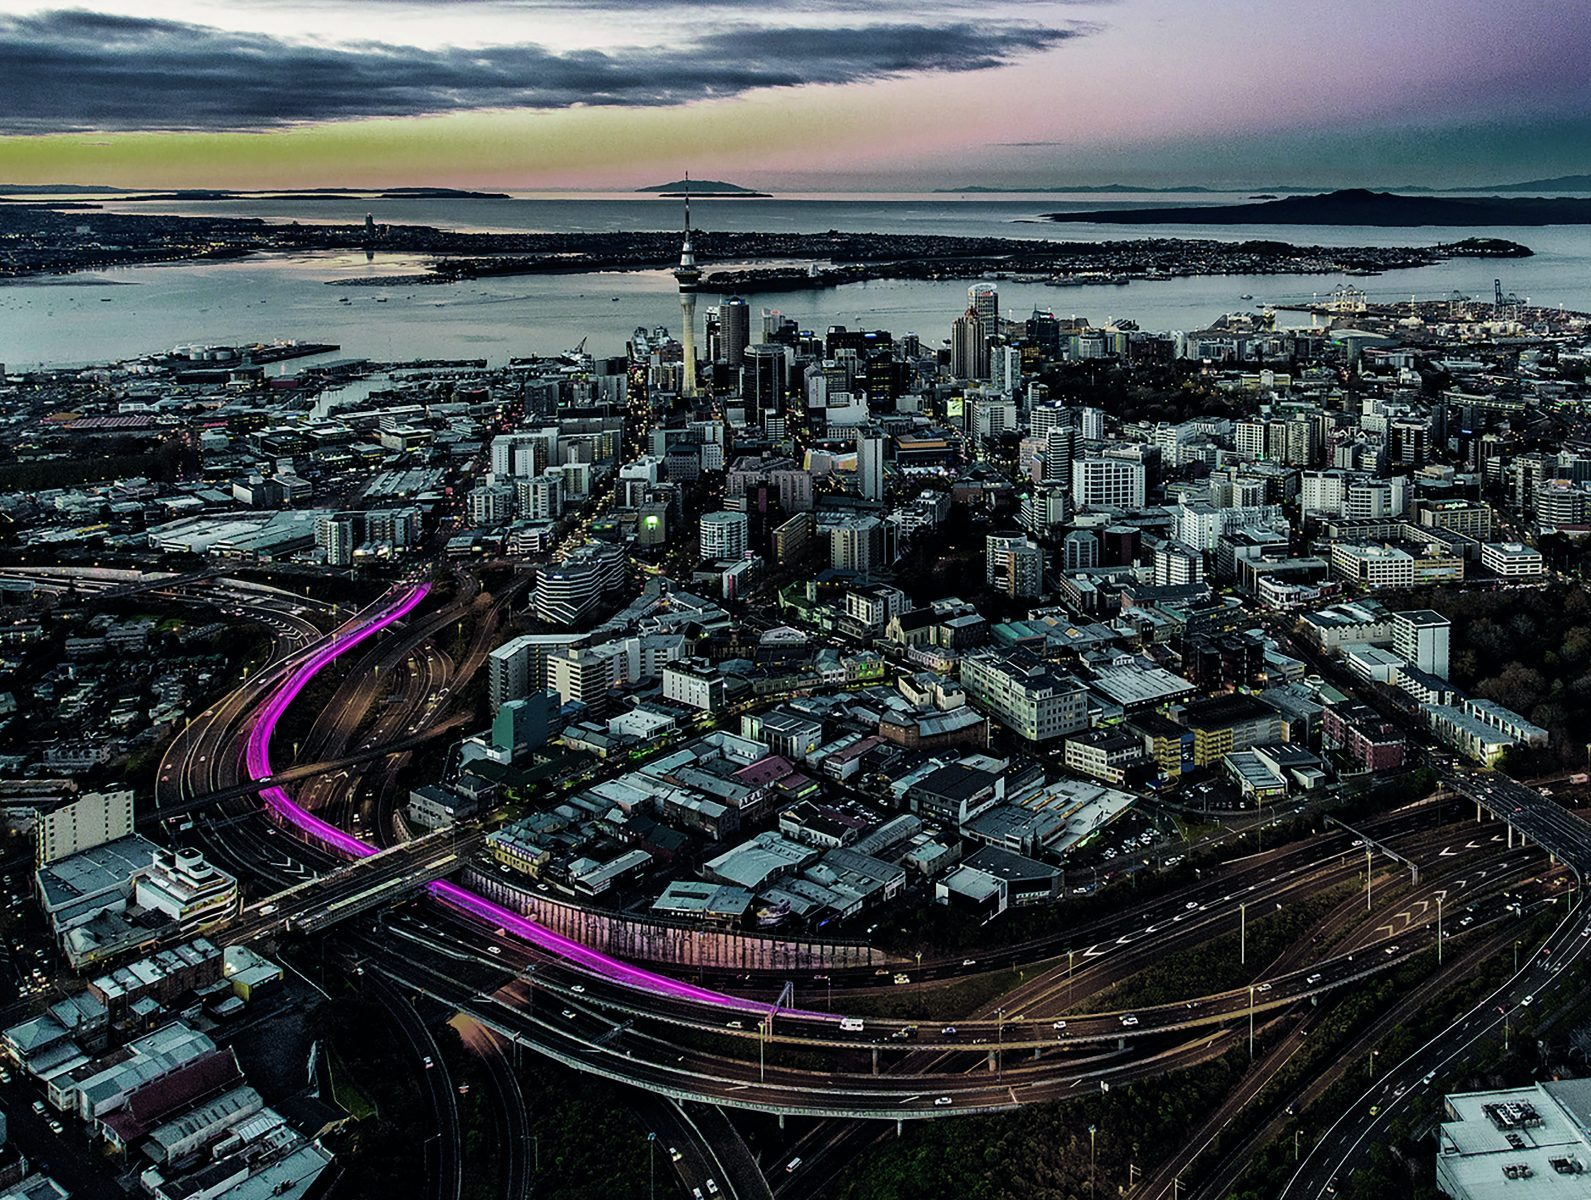 Nelson St Cycleway | Monk Mackenzie, LandLAB, GHD (Auckland, New Zealand)